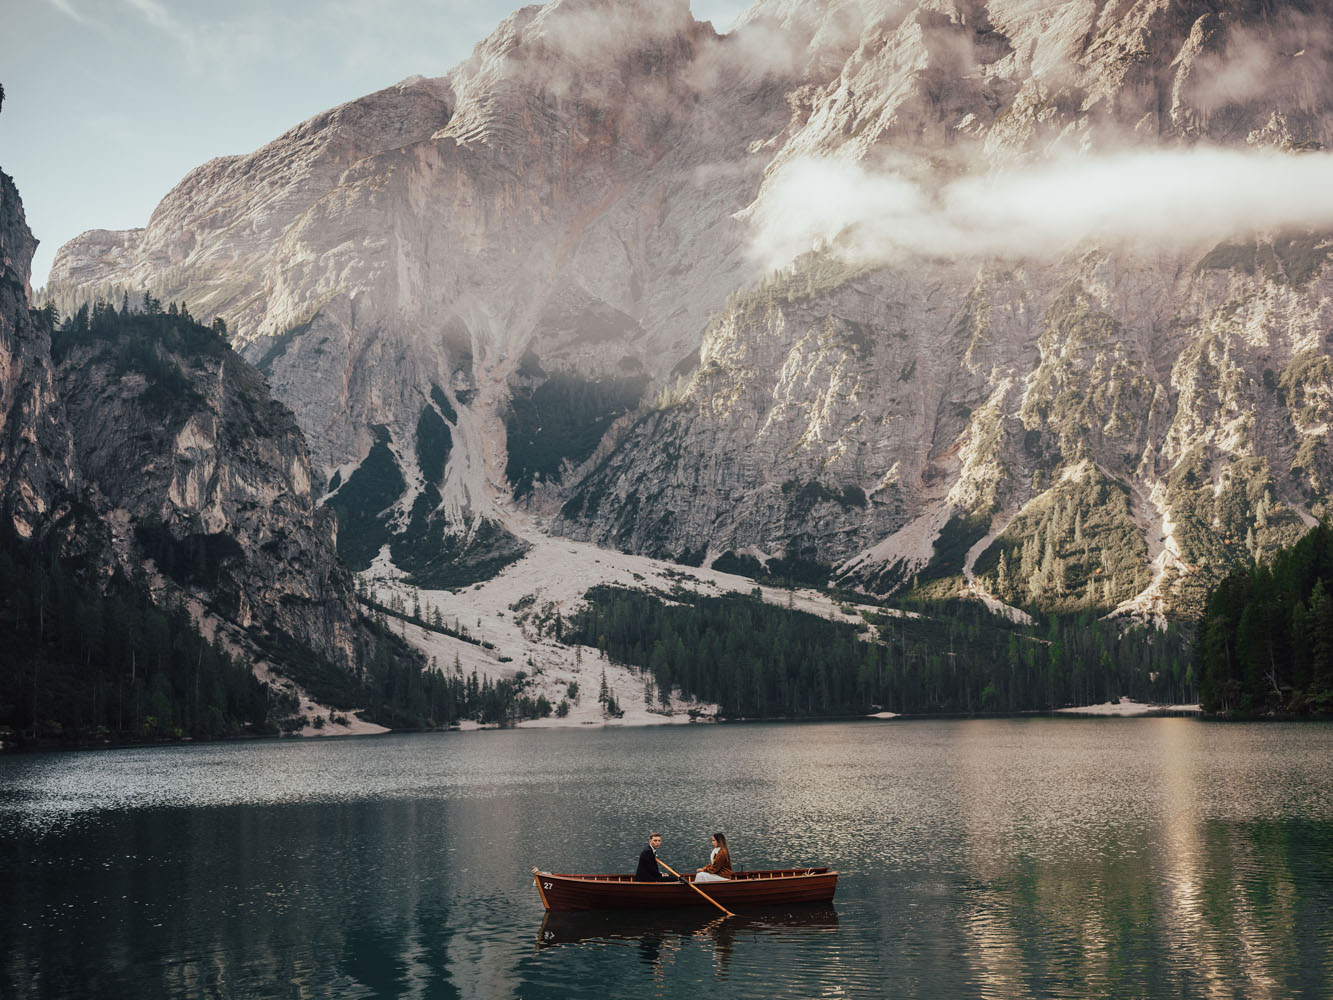 Wedding Elopement on Lago Di Braies – Pragser Wildsee & Passo Giau